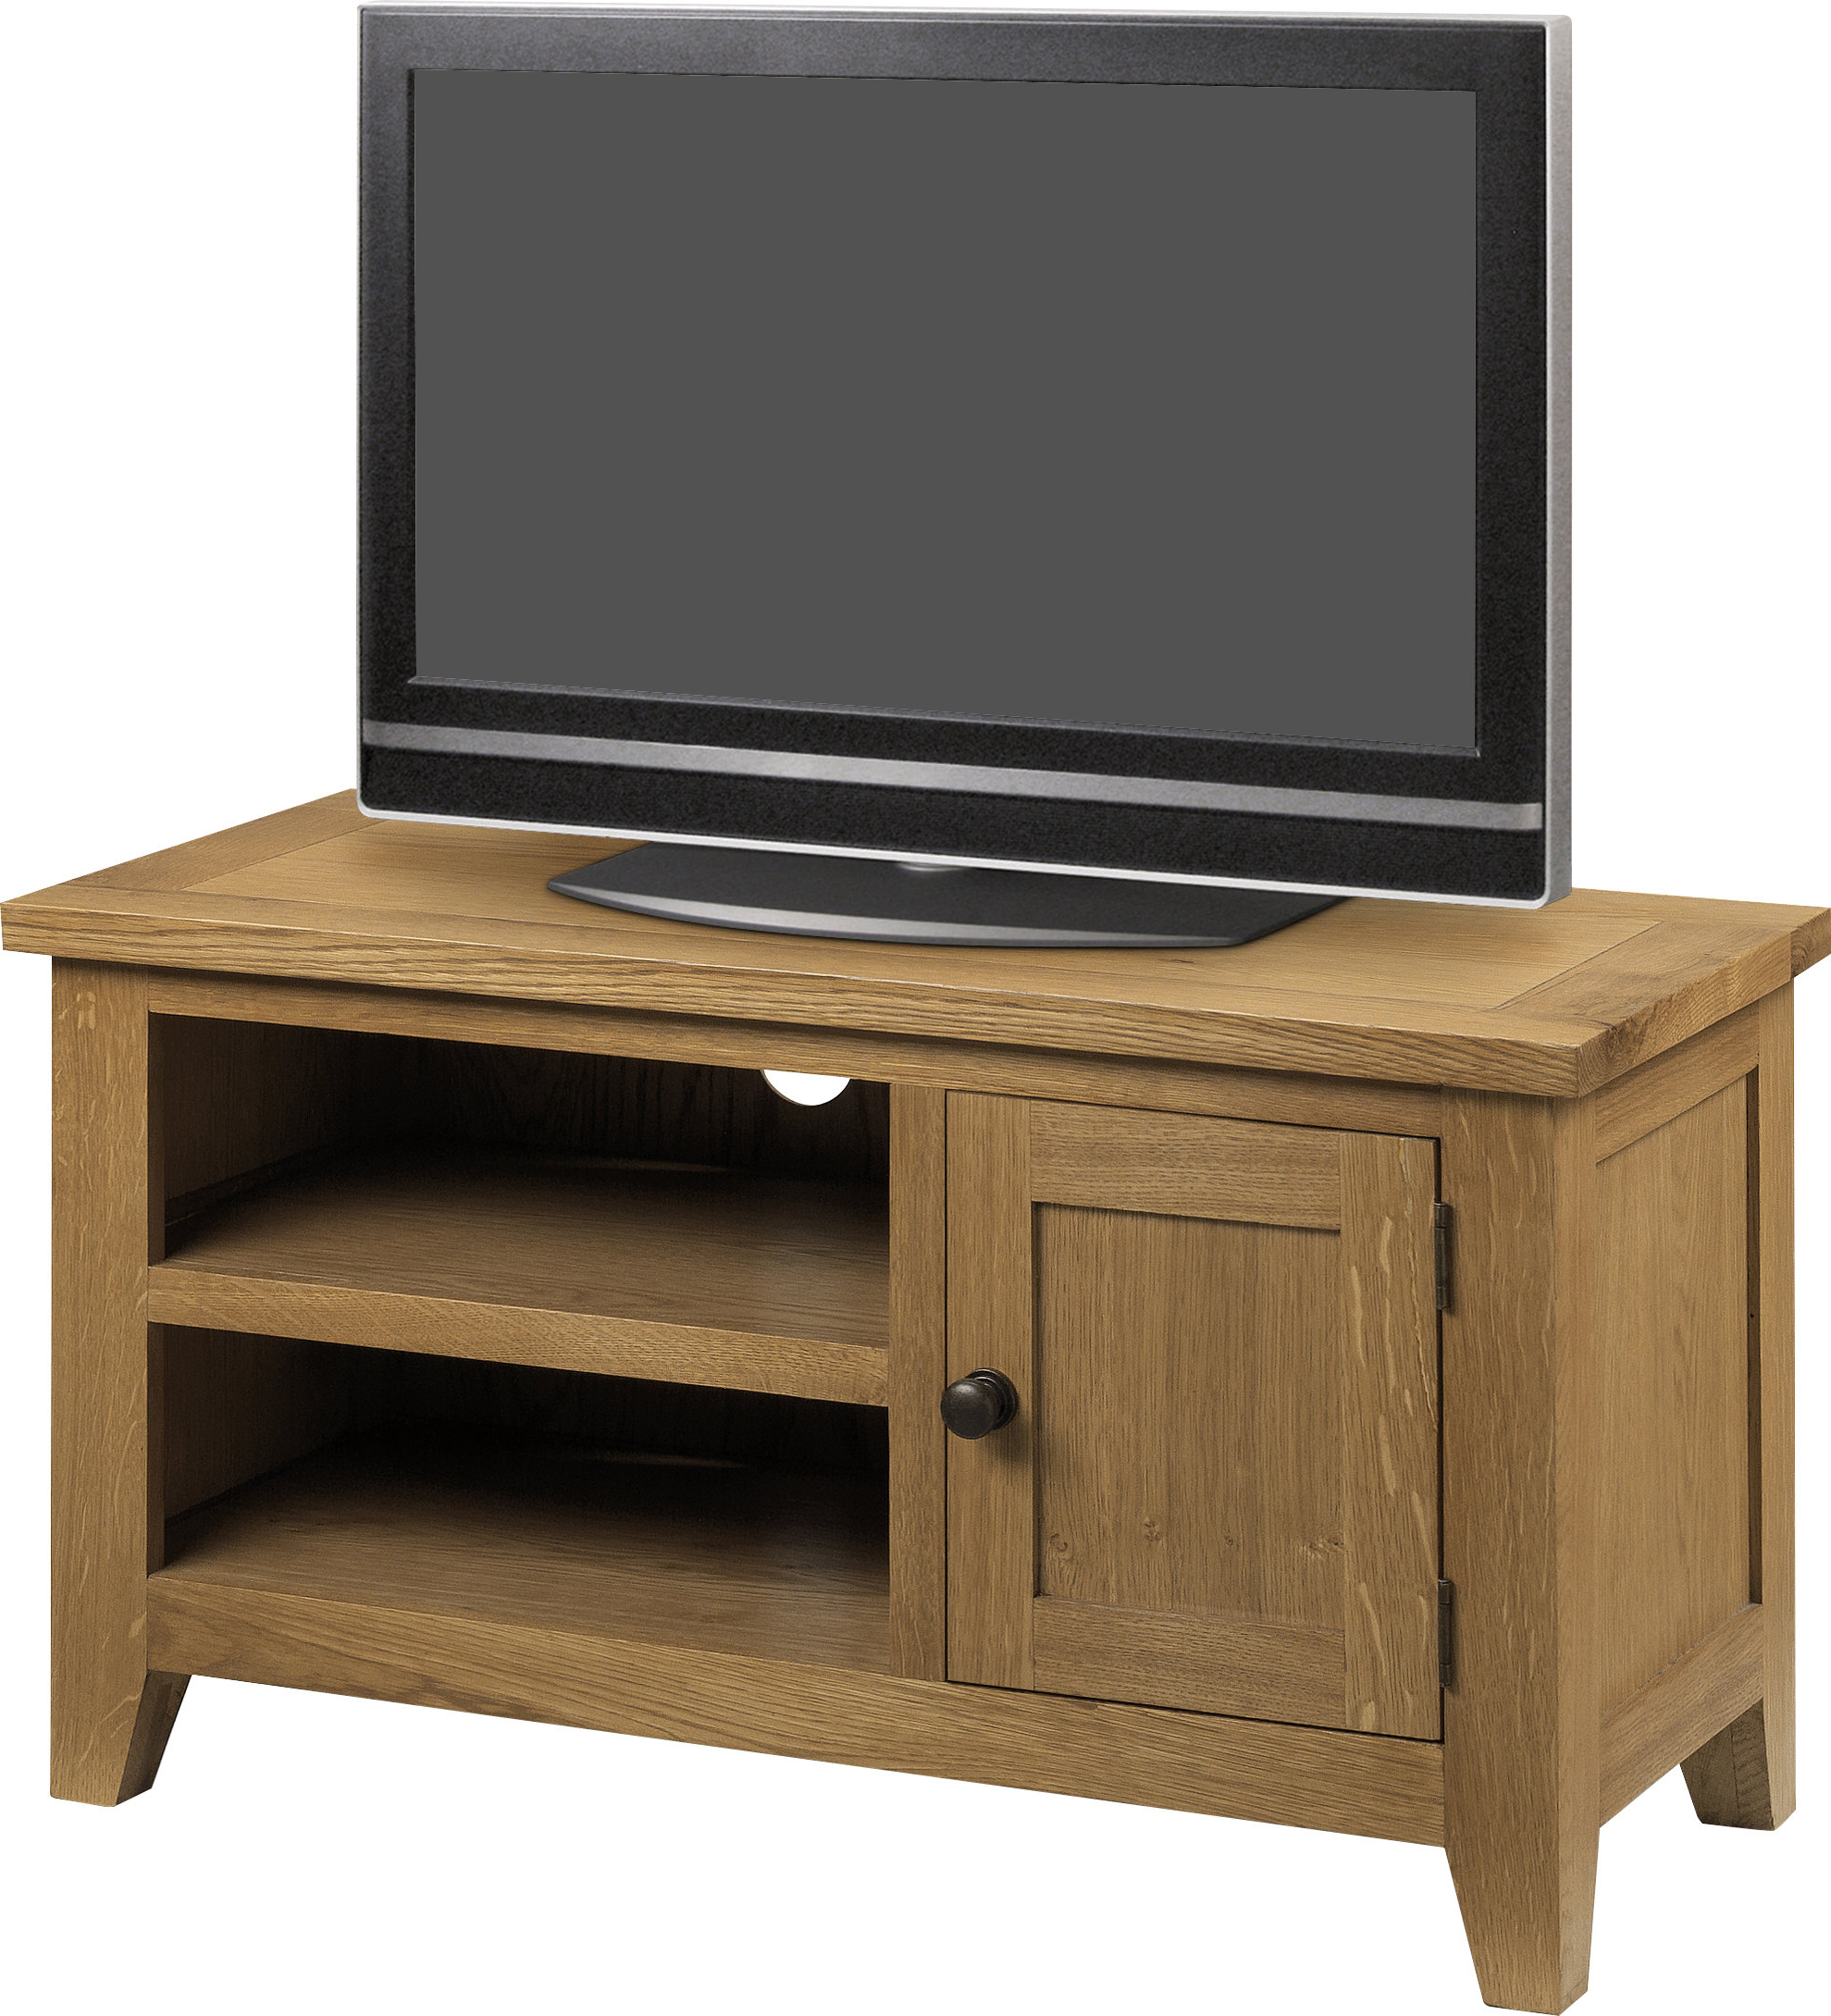 Traditional Tv Stands You'll Love (View 10 of 20)